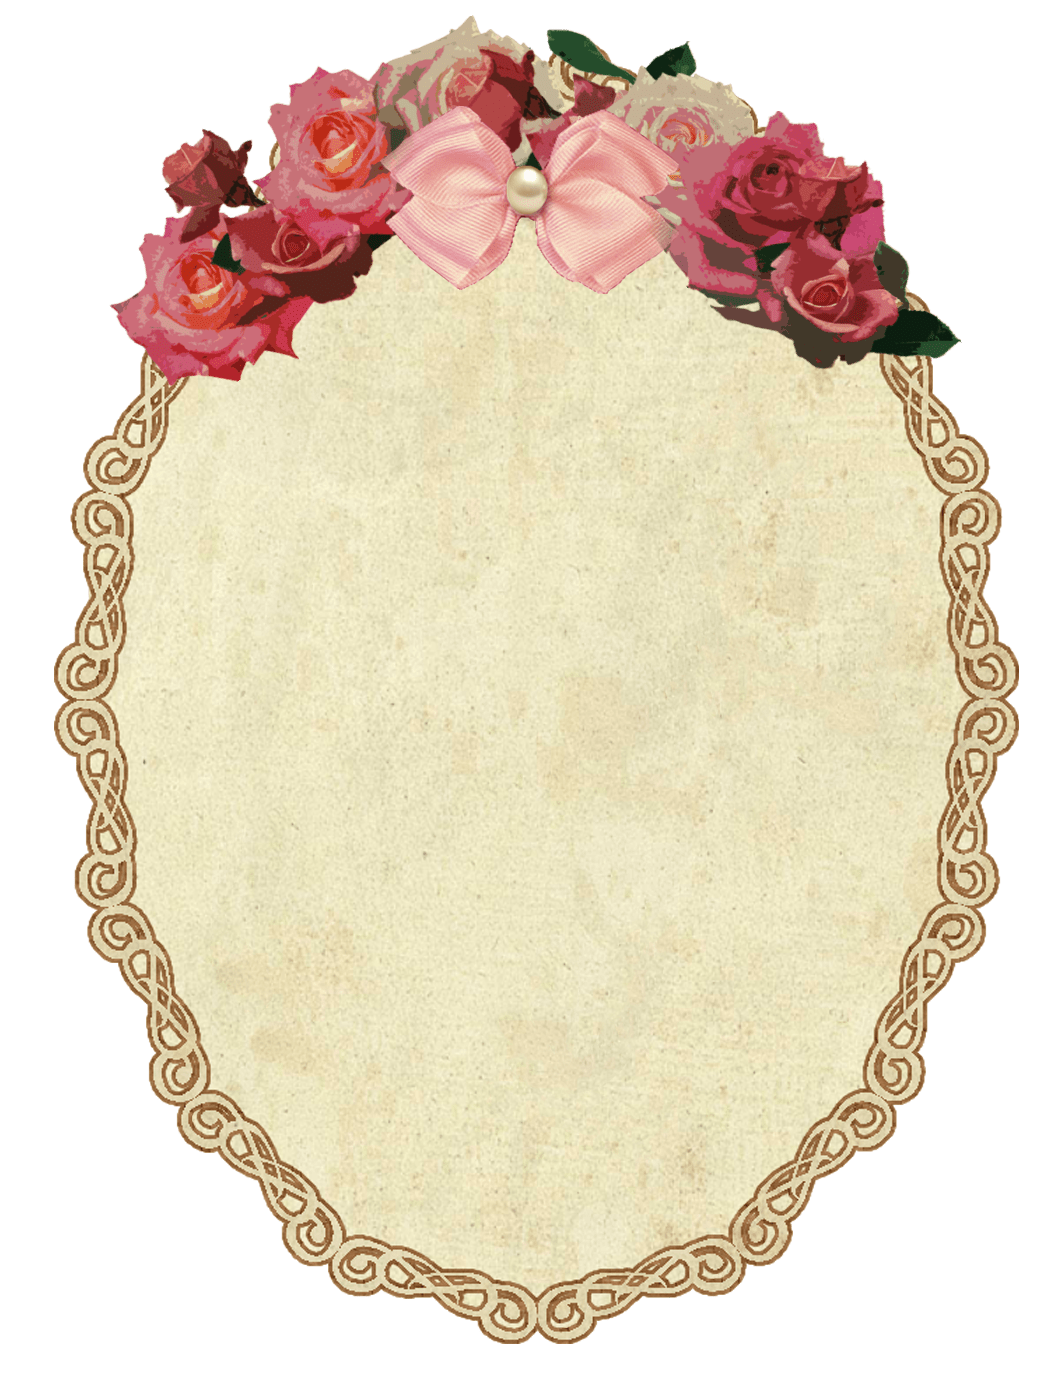 Oval gold frame png. Rose circle vintage transparent